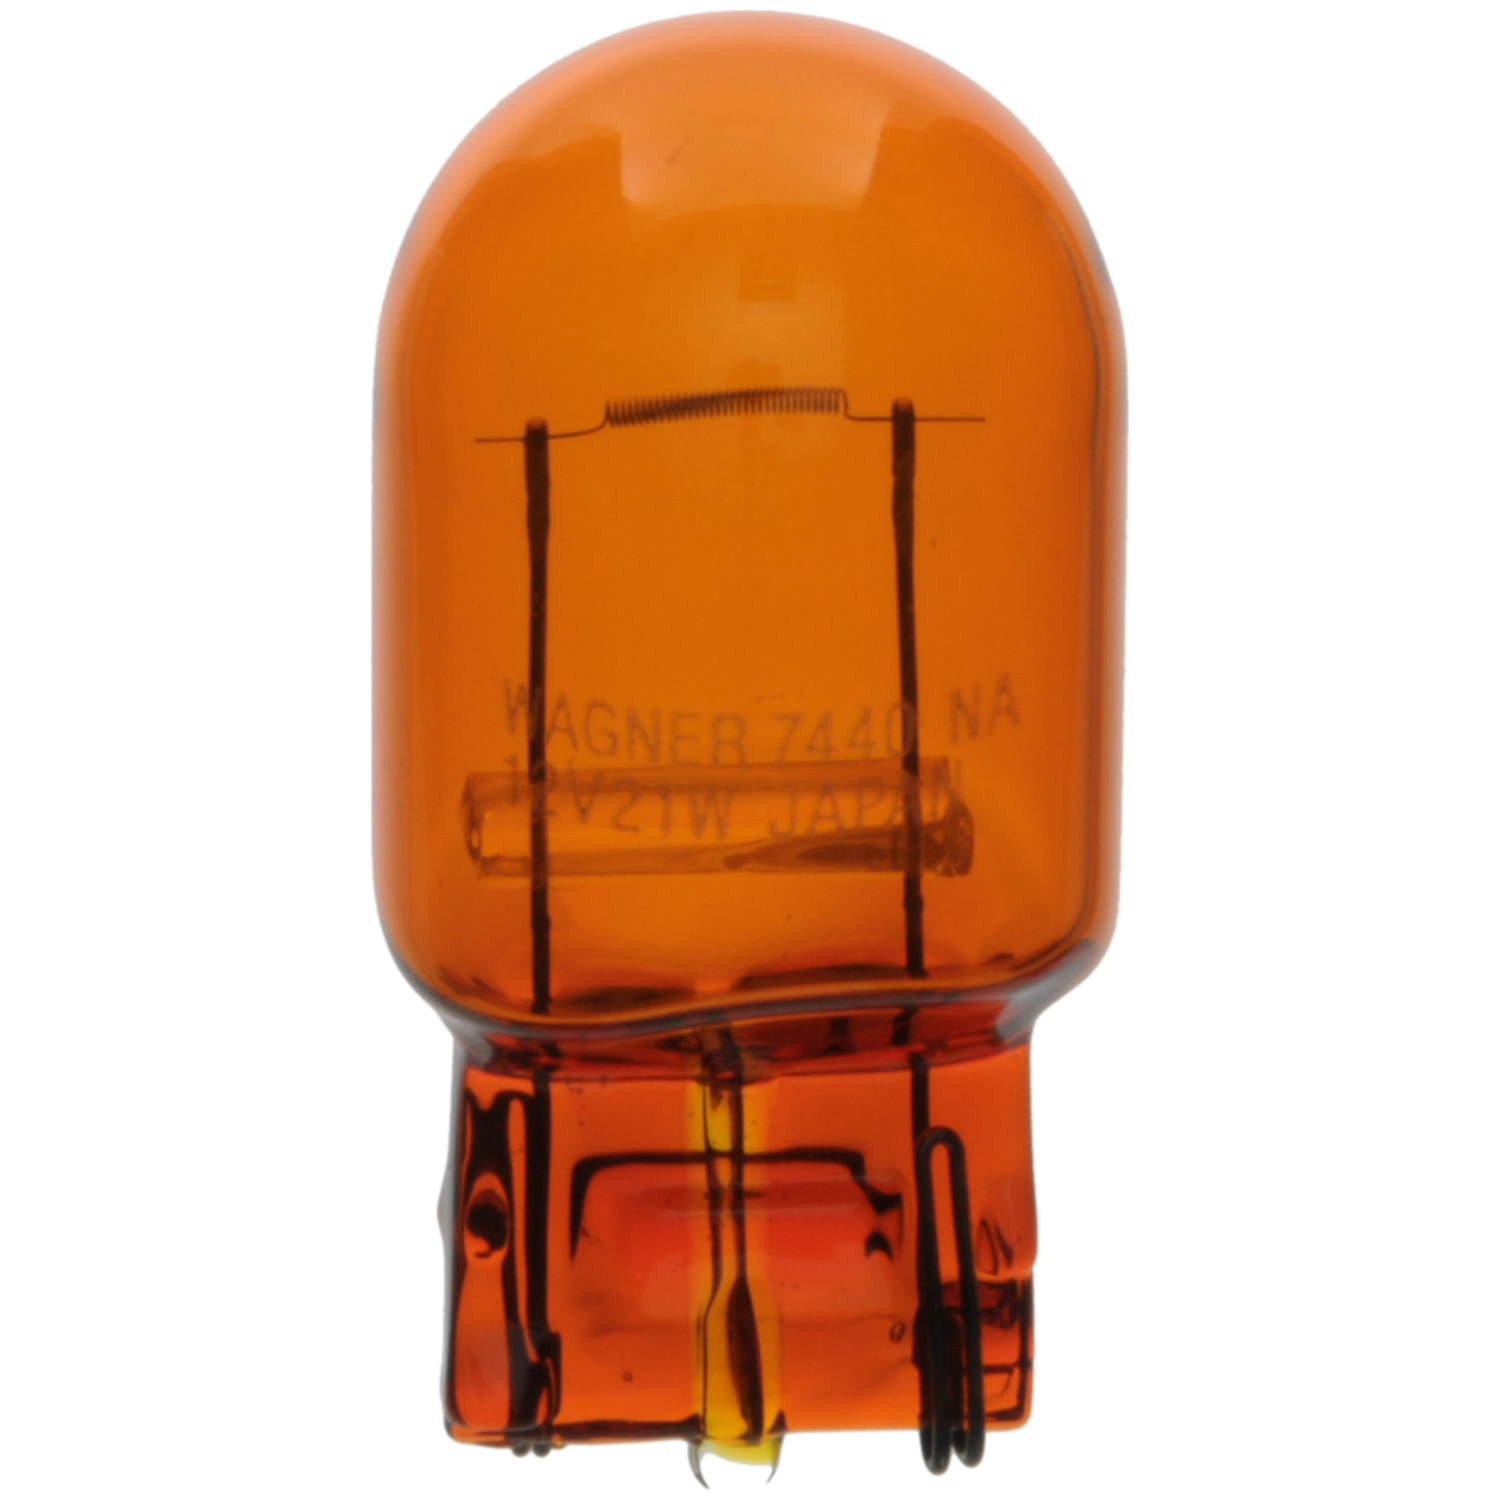 WAGNER LIGHTING - Turn Signal Light Bulb (Rear) - WLP 7440NA